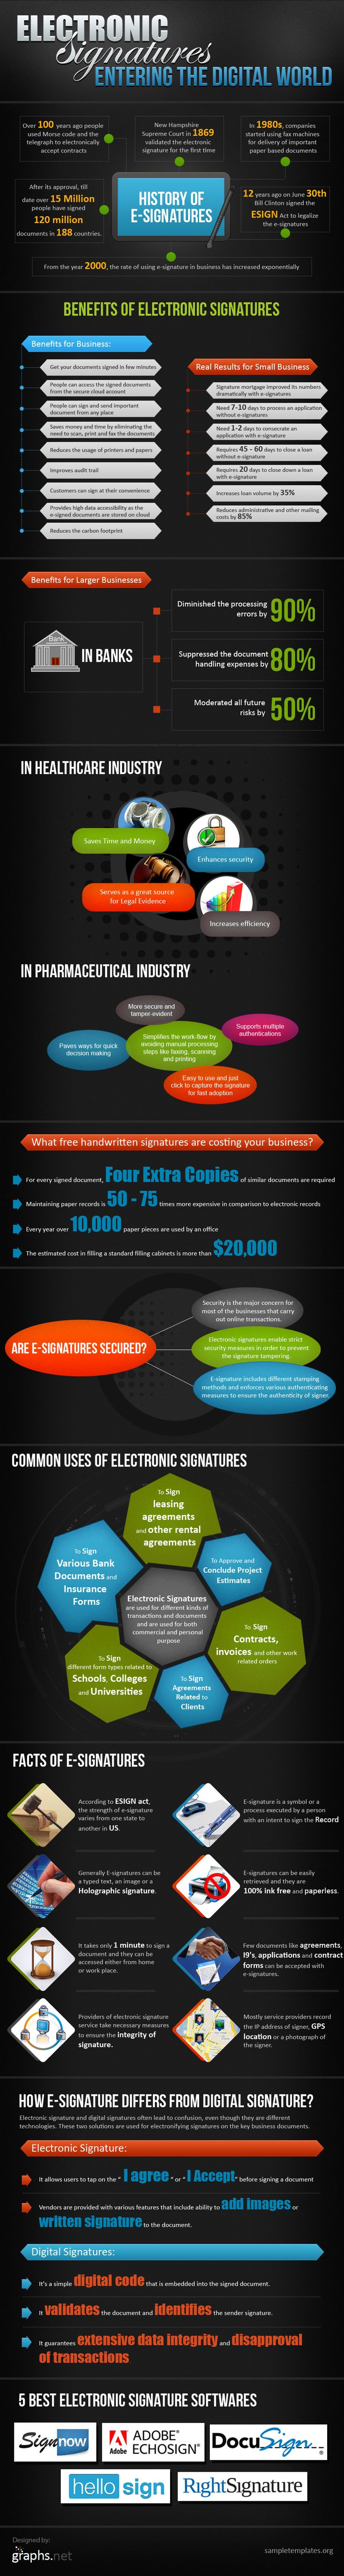 Electronic Signatures- Entering the Digital World [Infograph]